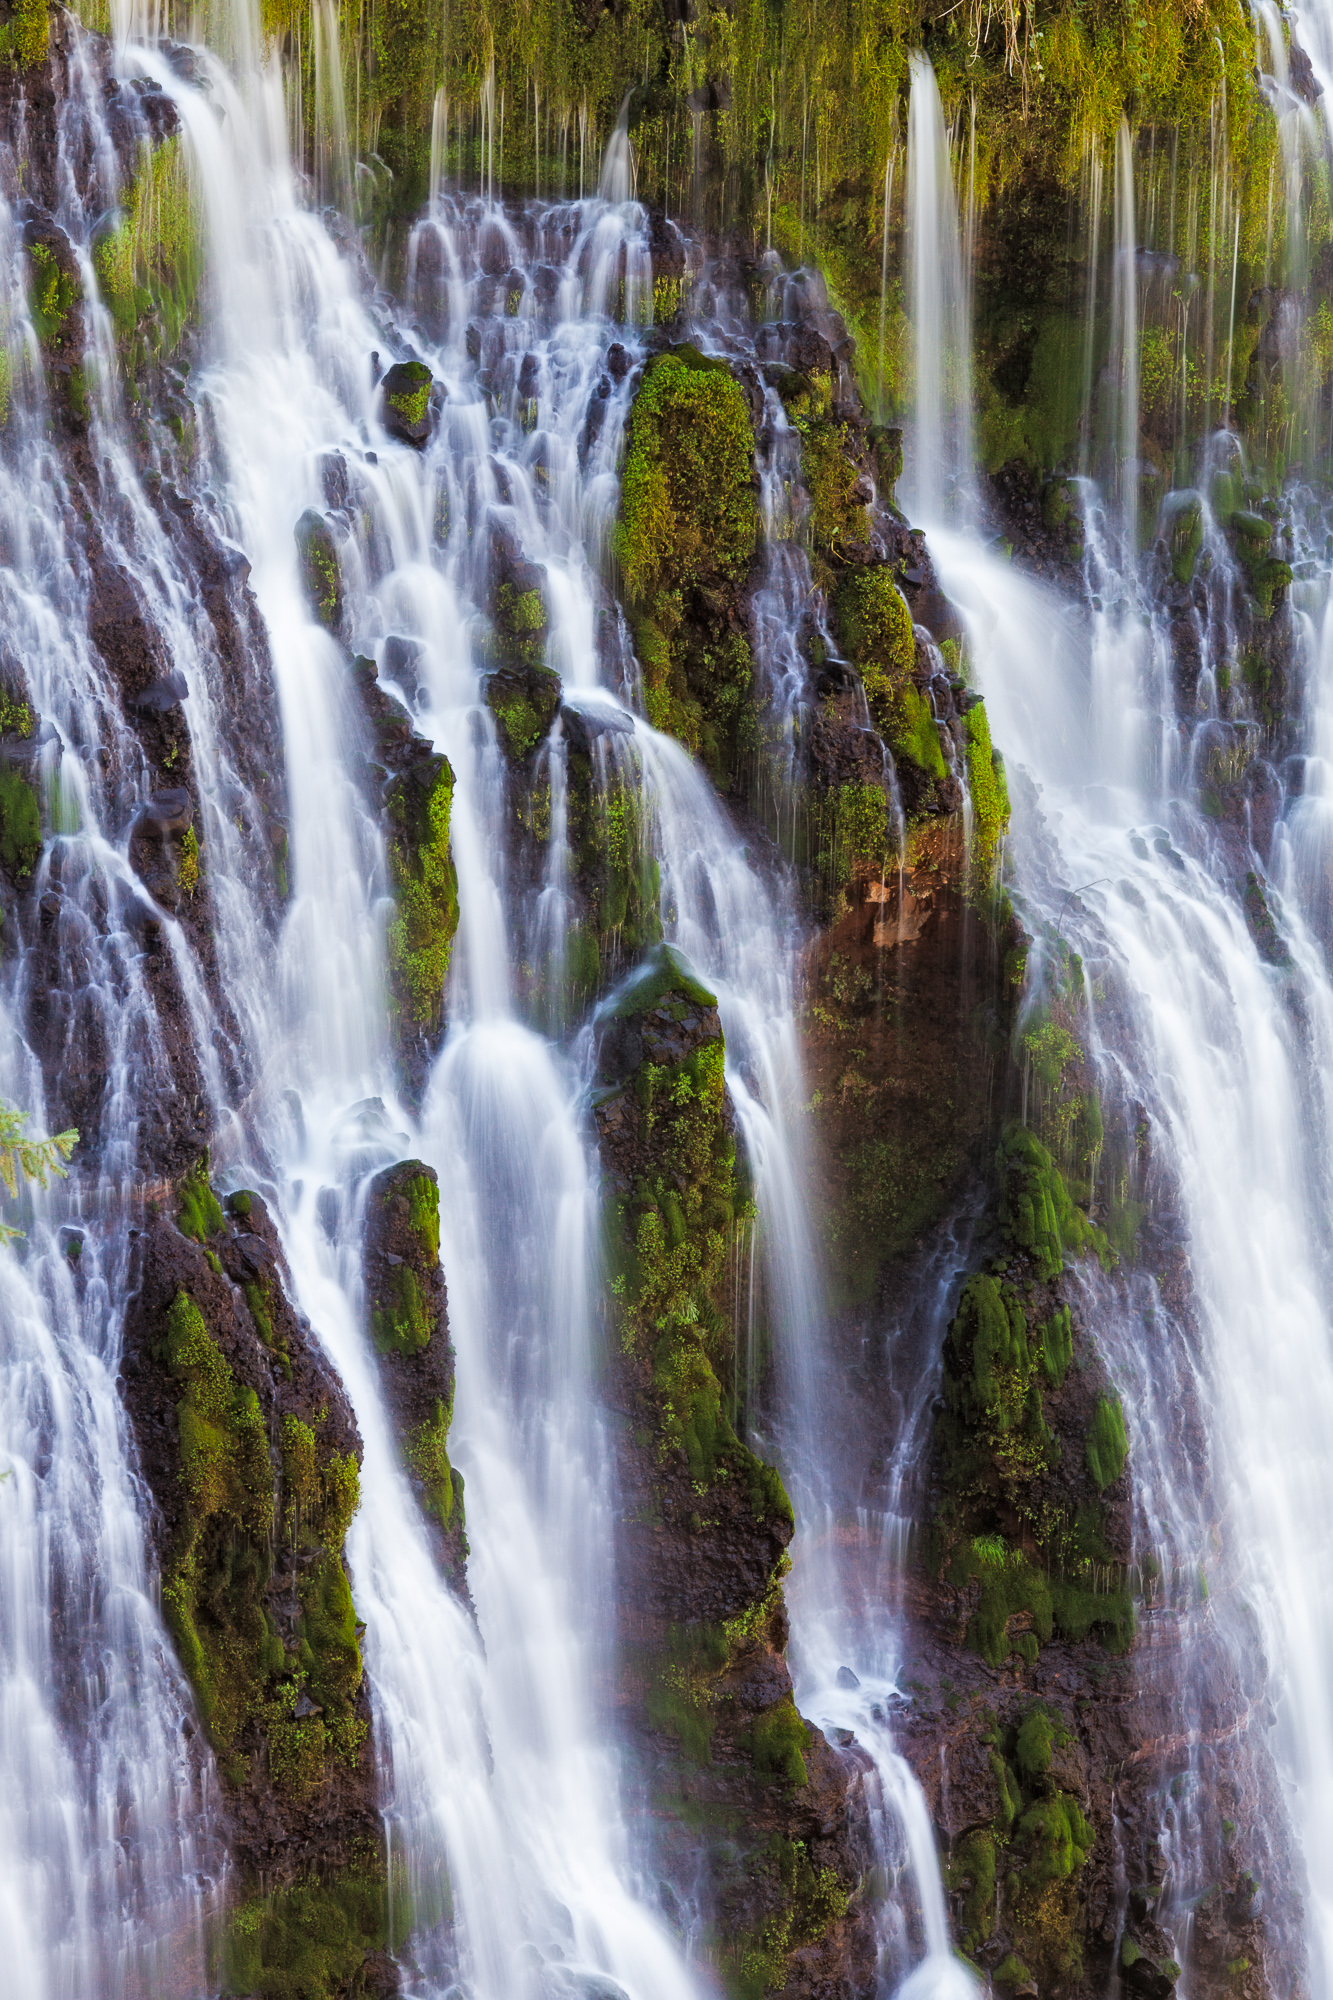 Burney Falls drops across a wide cliff into a pool below, creating a tree-lined grotto.